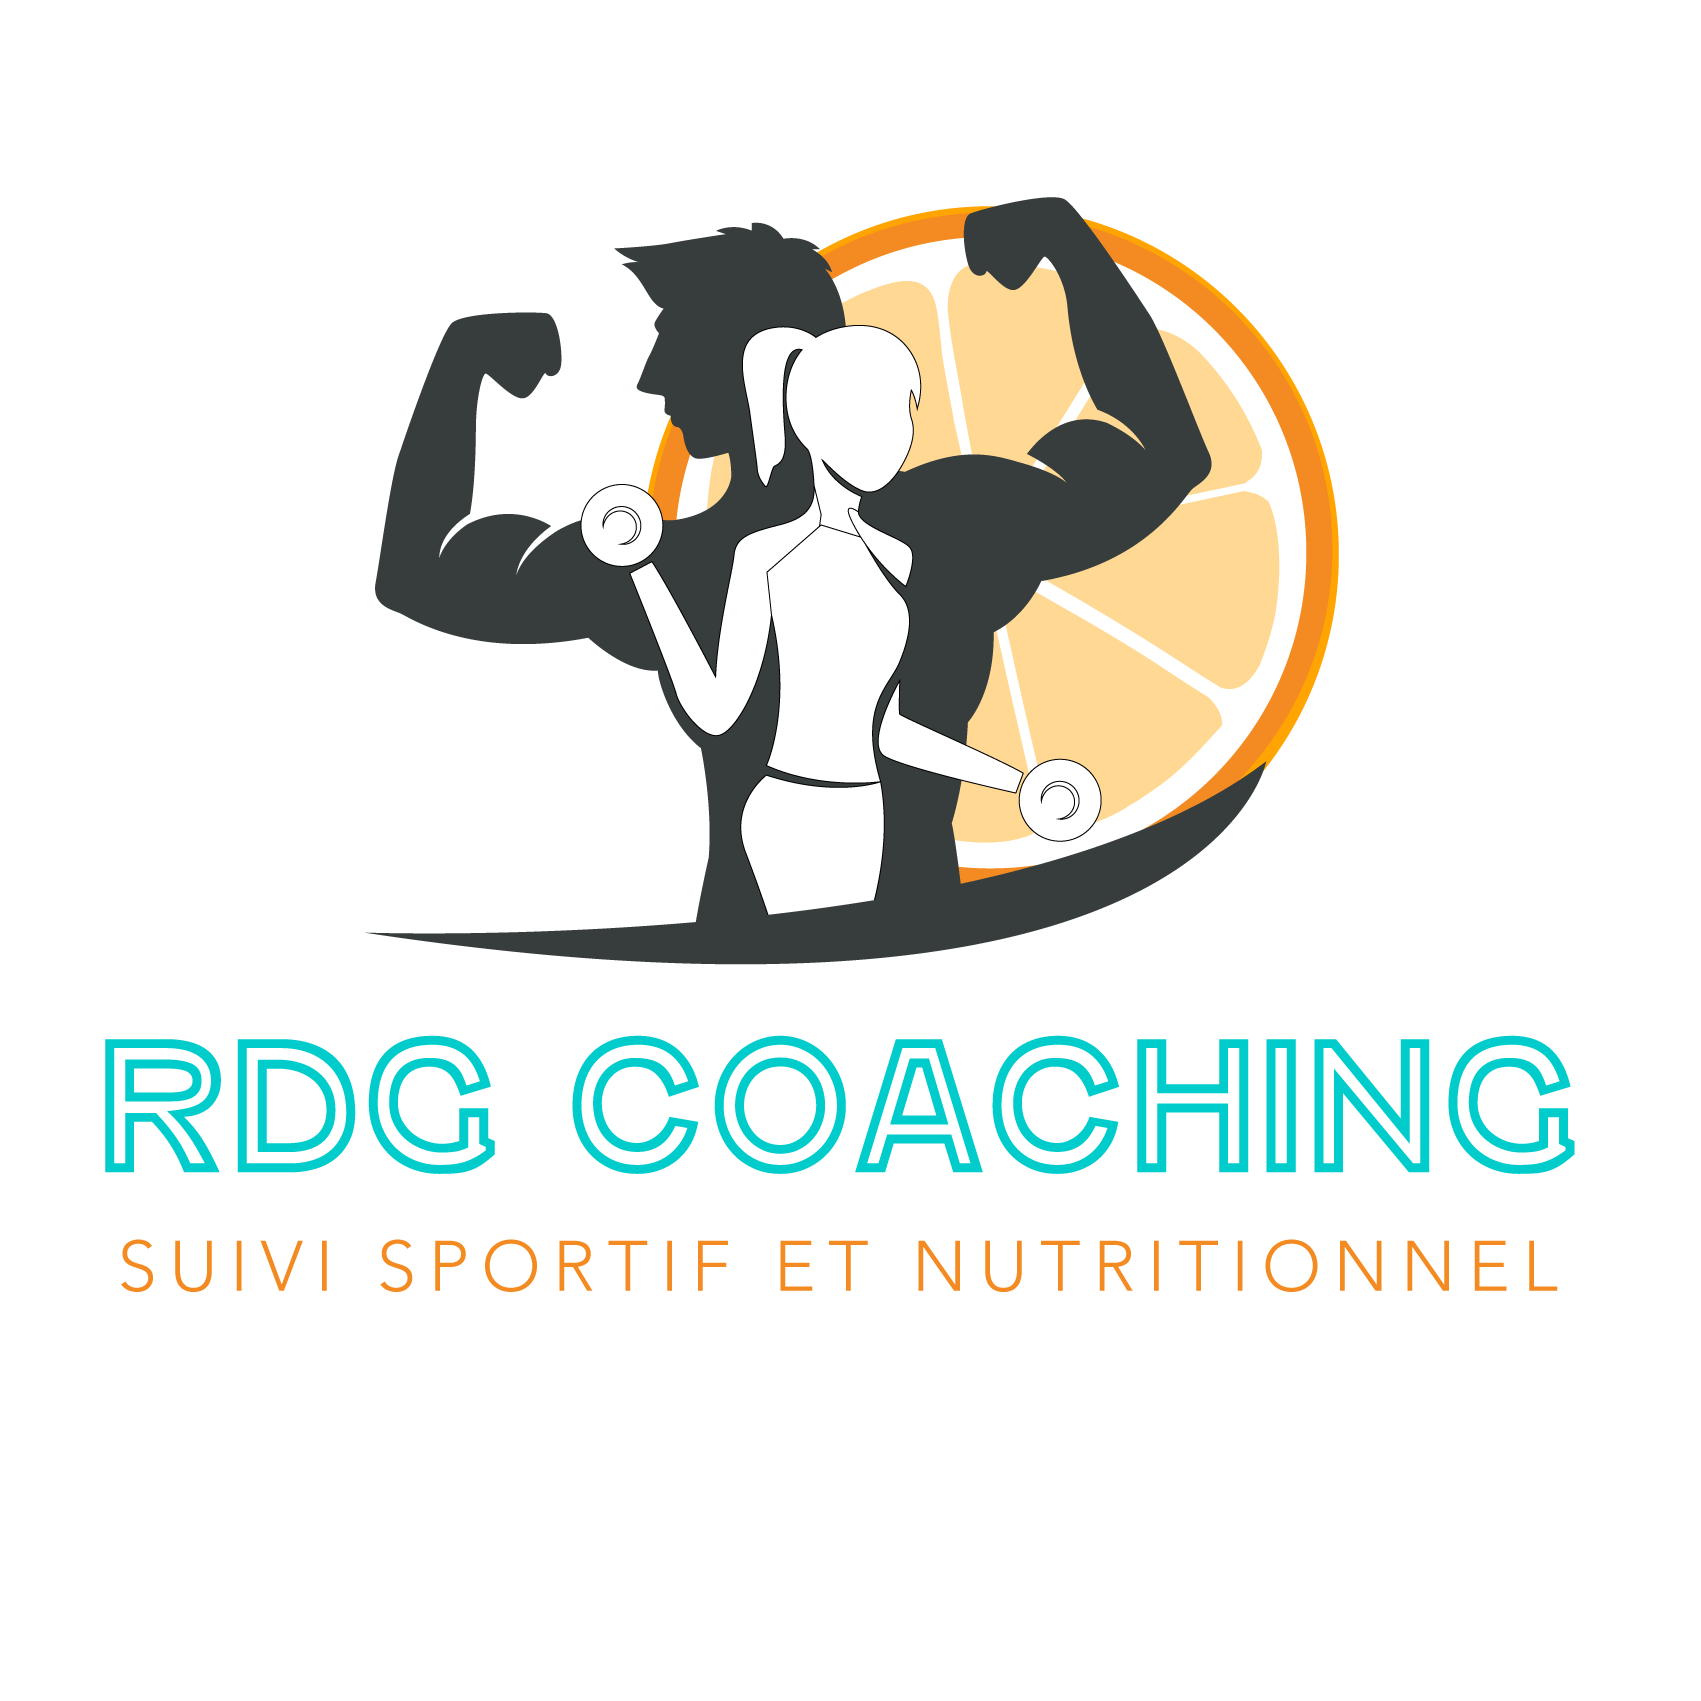 RDG COACHING